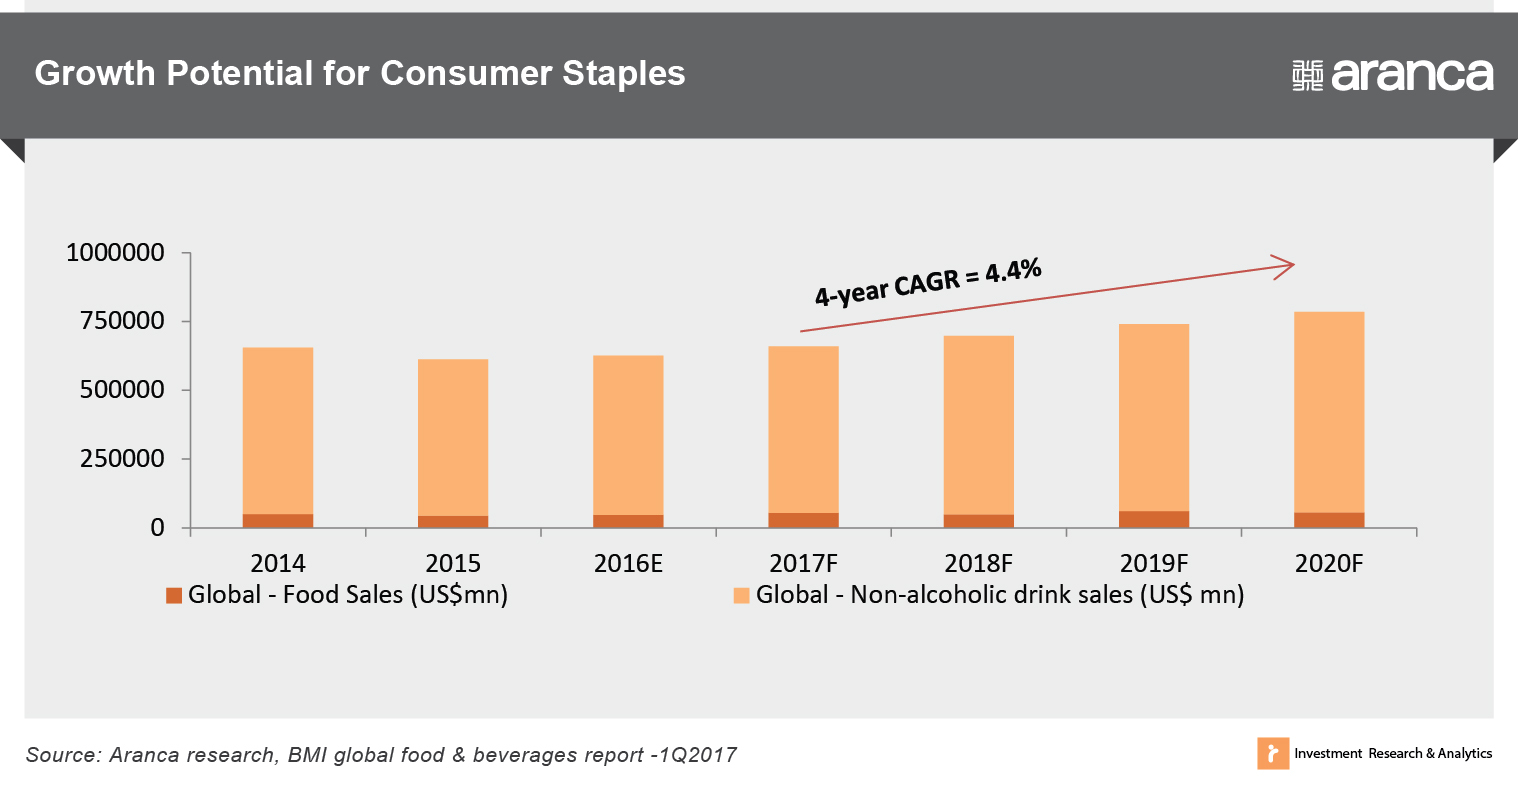 Growth Potential for Consumer Staples